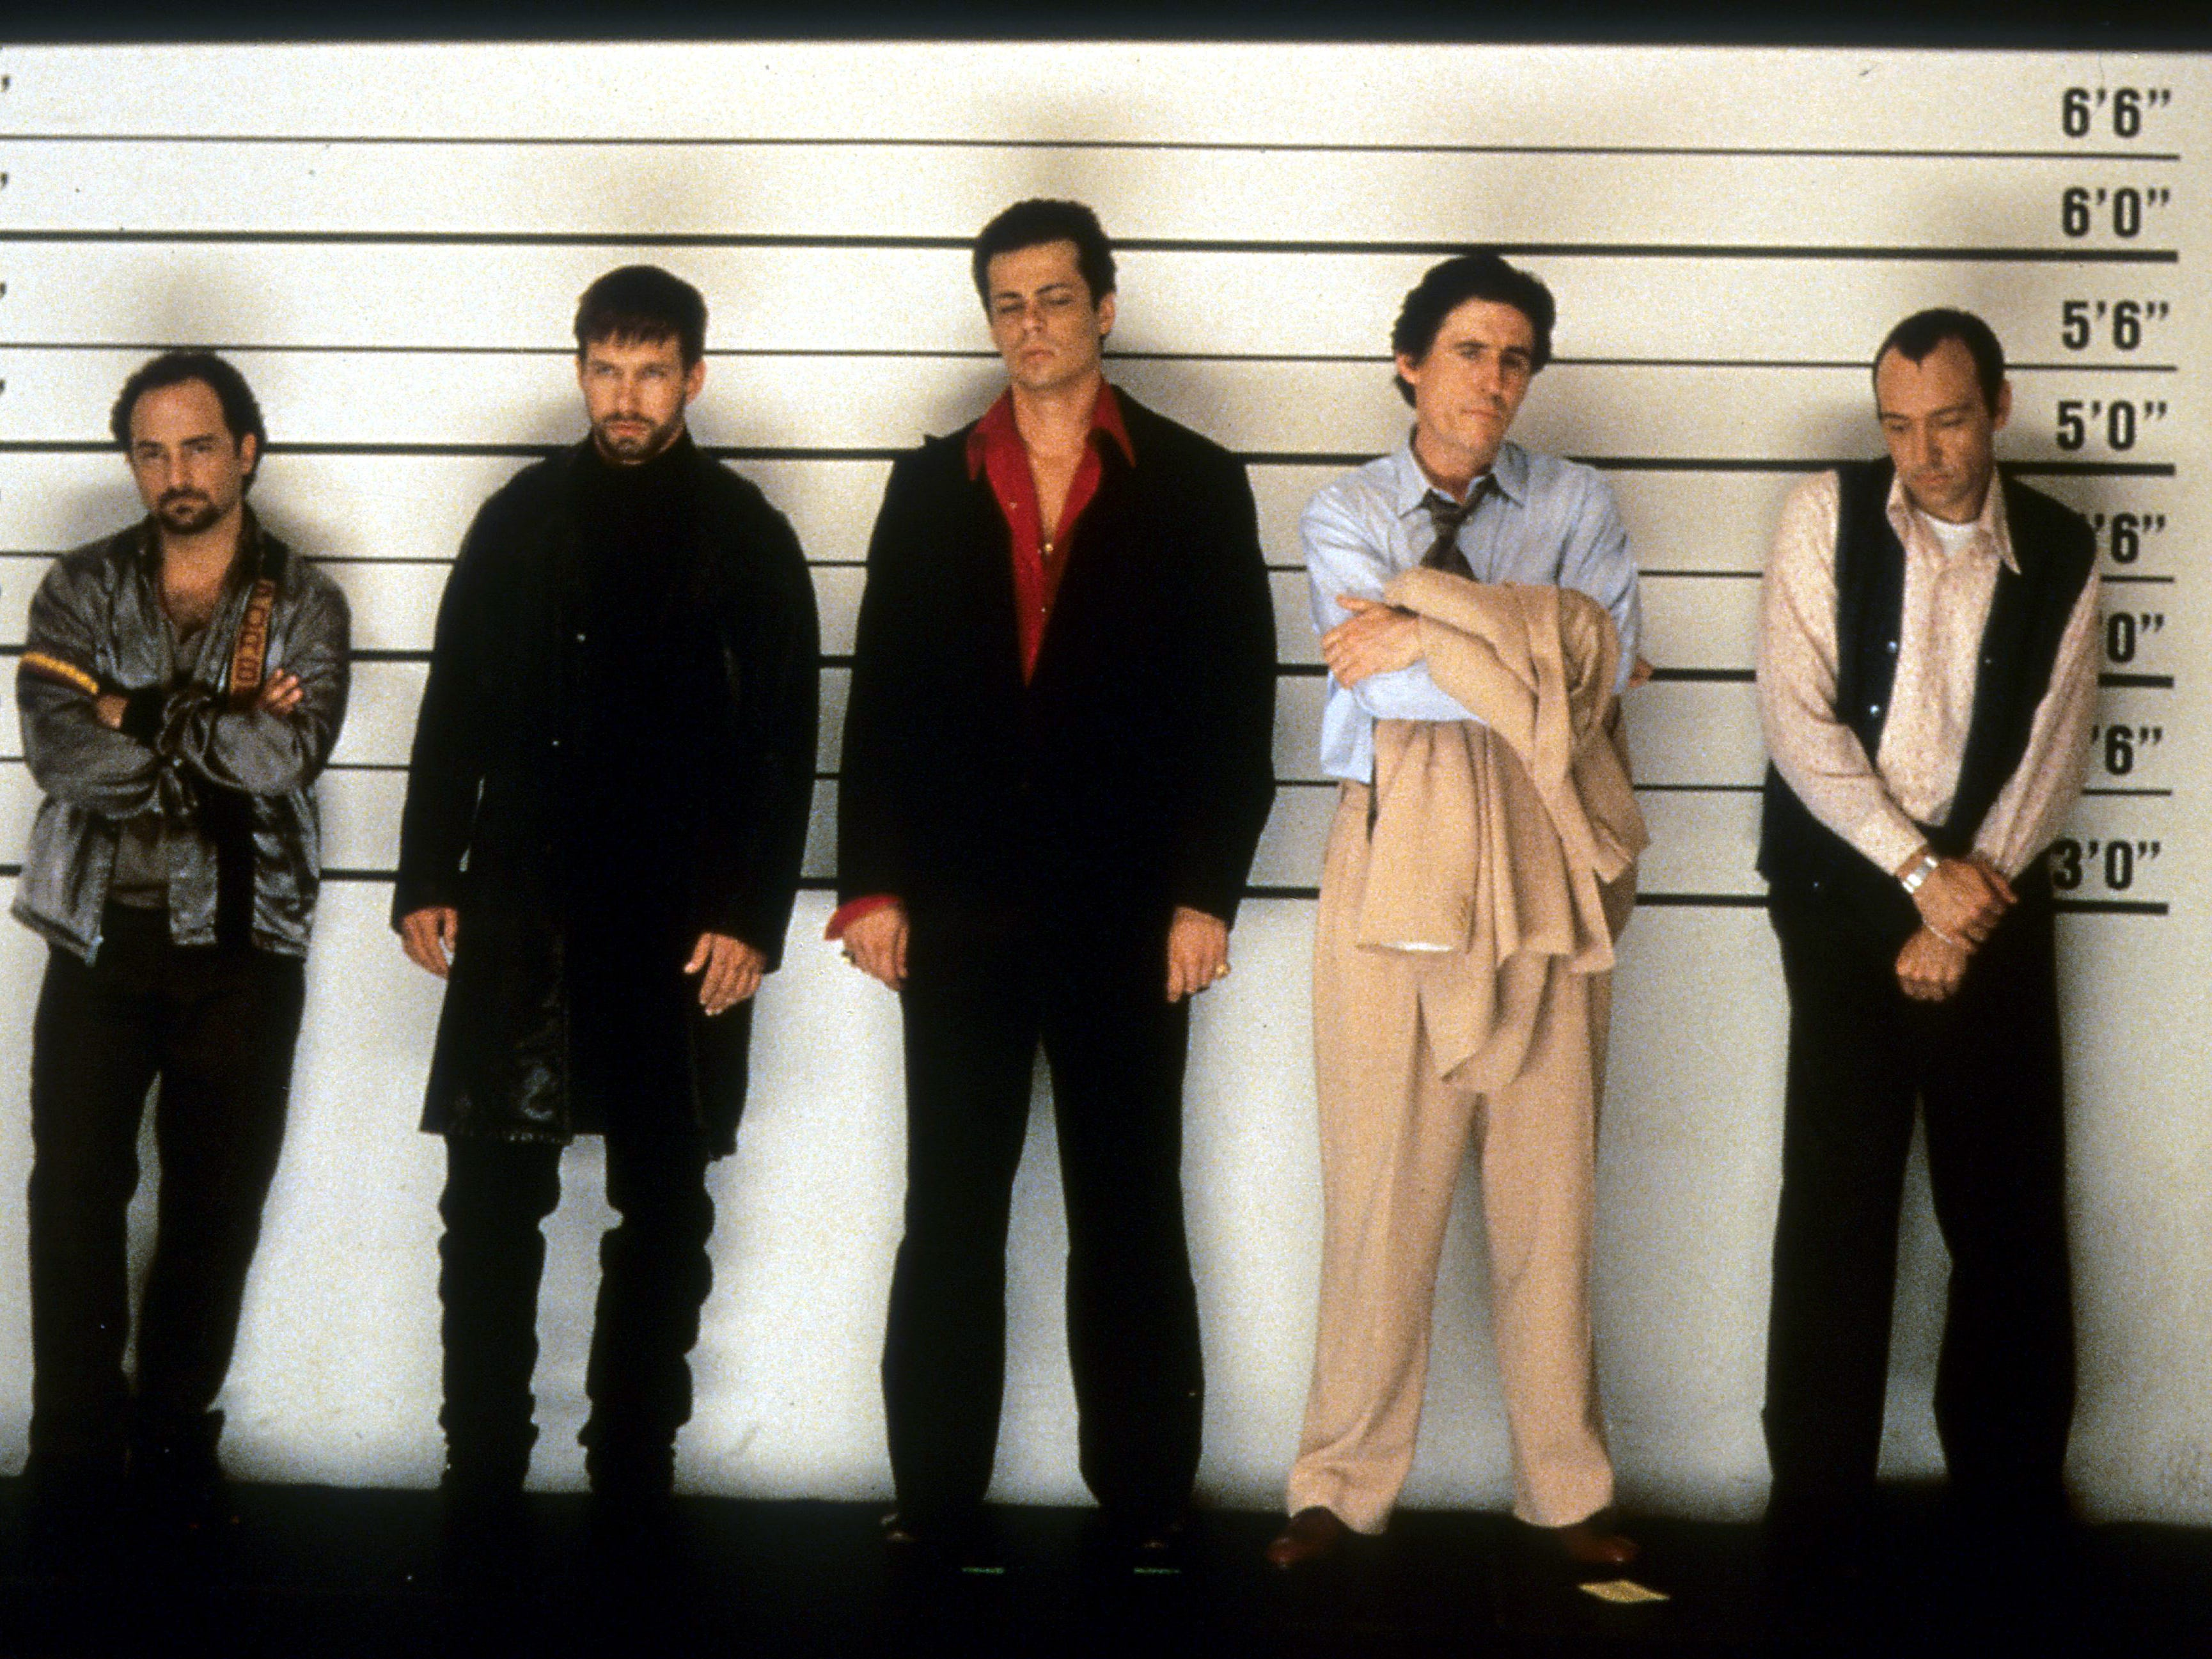 NOTE, one time use for Oscar gallery by  Susan, Feb 20-19.   Kevin Pollak, Stephen Baldwin, Benicio Del Toro, Gabriel Byrne and Kevin Spacey line up in a scene from the film 'The Usual Suspects', 1995. (Photo by Gramercy Pictures/Getty Images) ORG XMIT: 143676302,566944731 [Via MerlinFTP Drop]